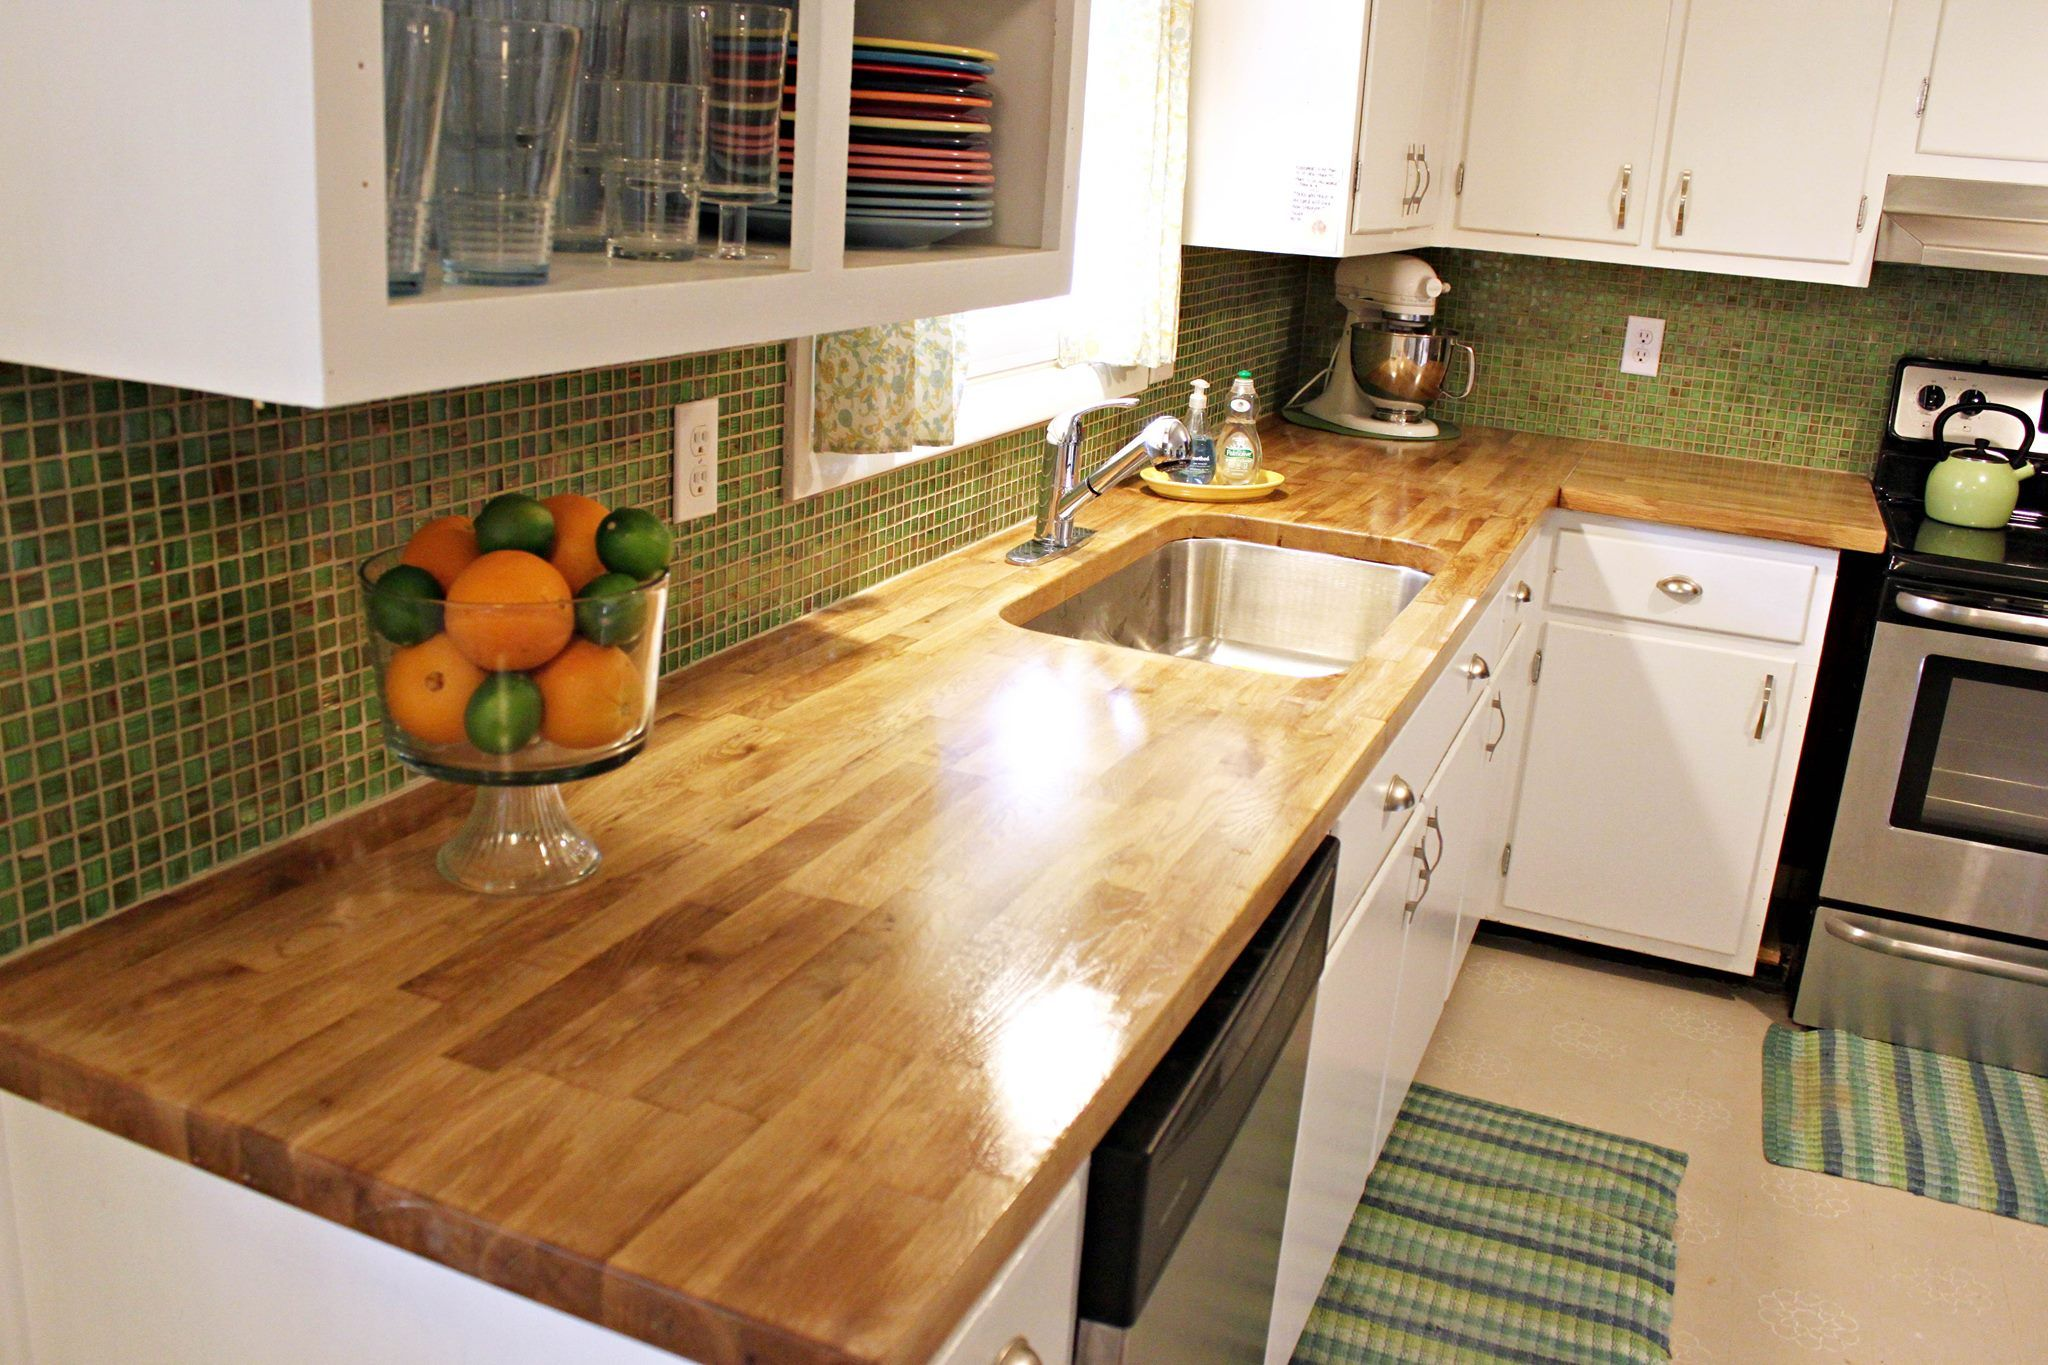 Furniture, Oak Wood Butcher Block Countertops For Small Kitchen Spaces With  White Wooden Cabinet And Green Mosaic Kitchen Tiles For Backsplash Ideas ...